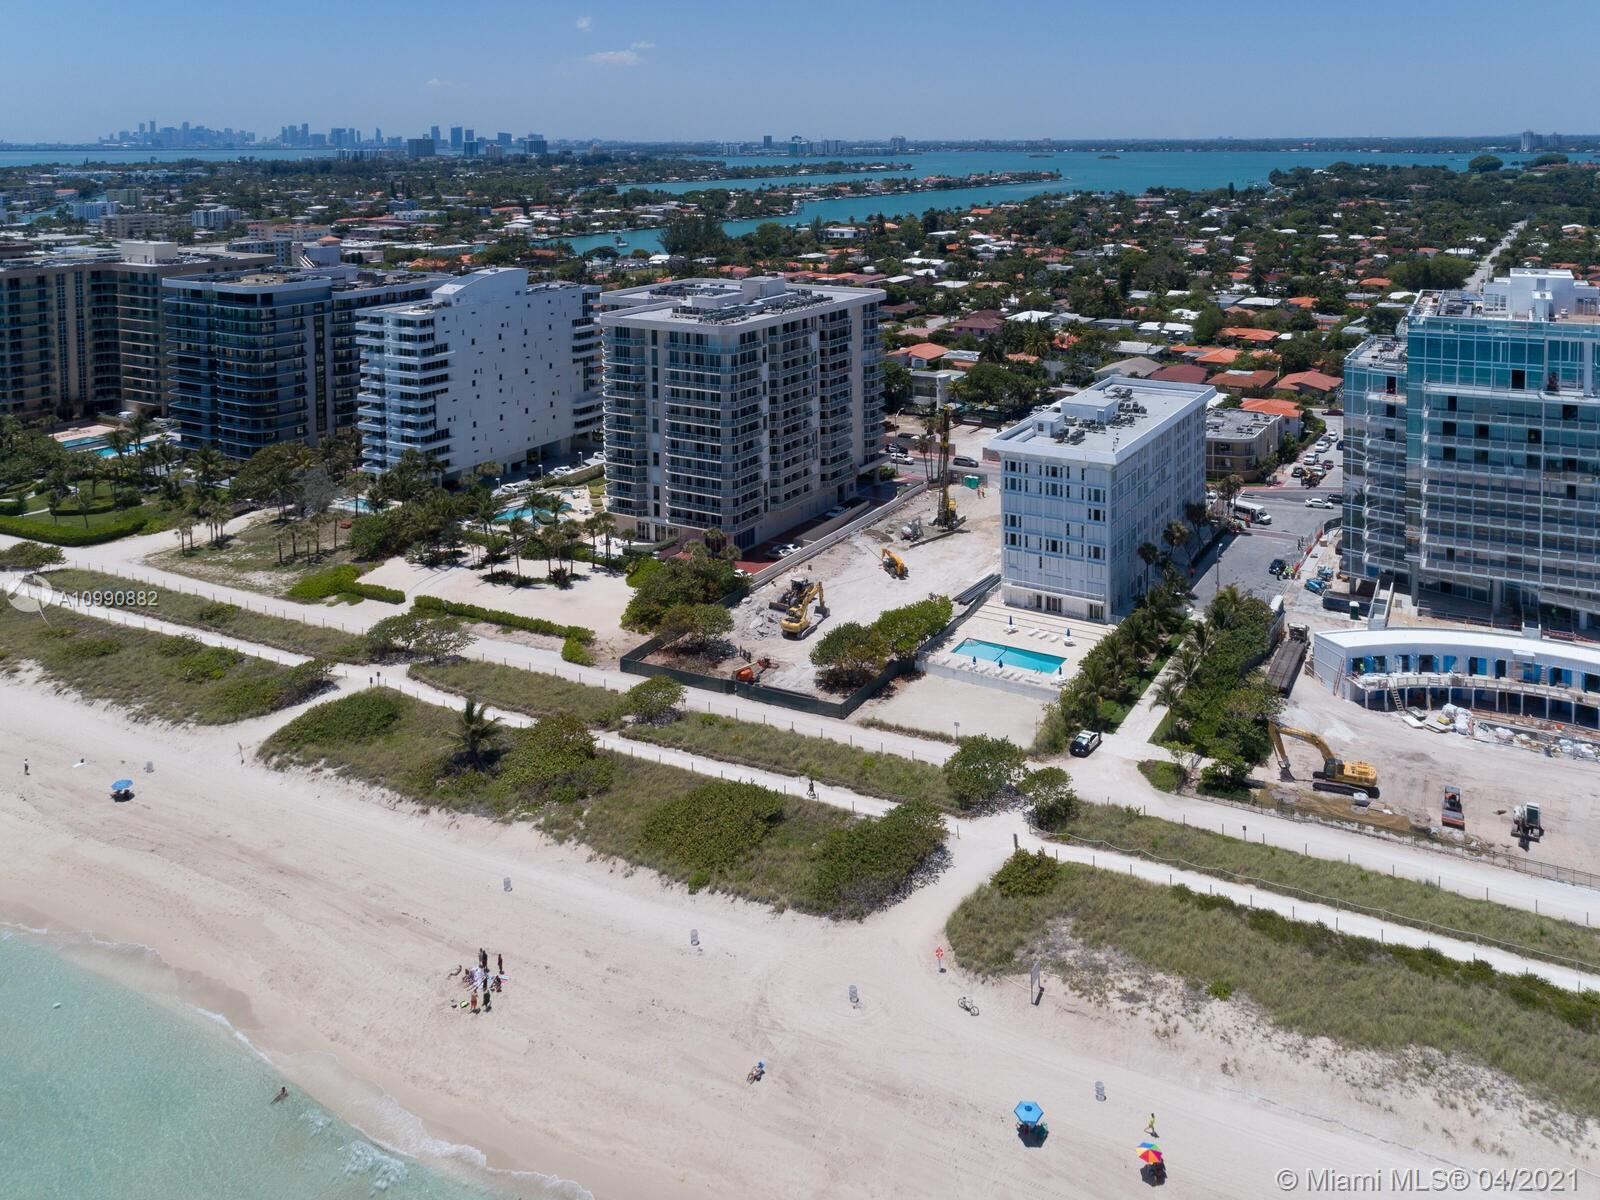 Photo of 8925 Collins Ave #2H, Surfside, Florida, 33154 - Aerial of Mirage and surrounding area from the ocean.